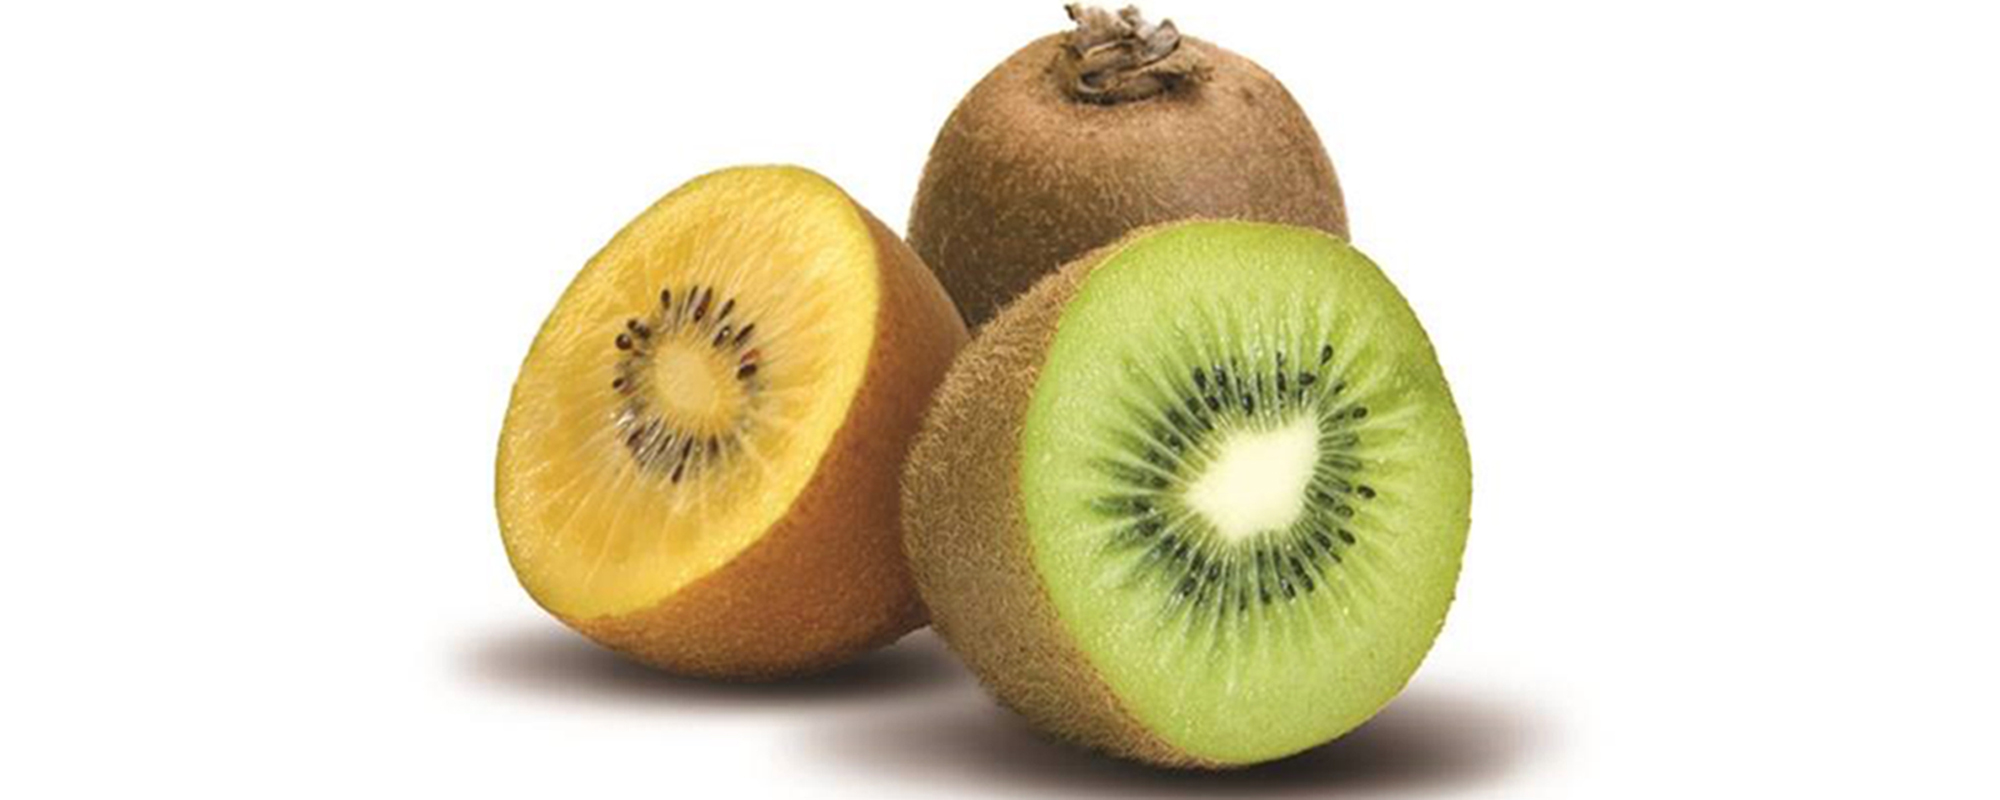 Green and gold kiwifruit